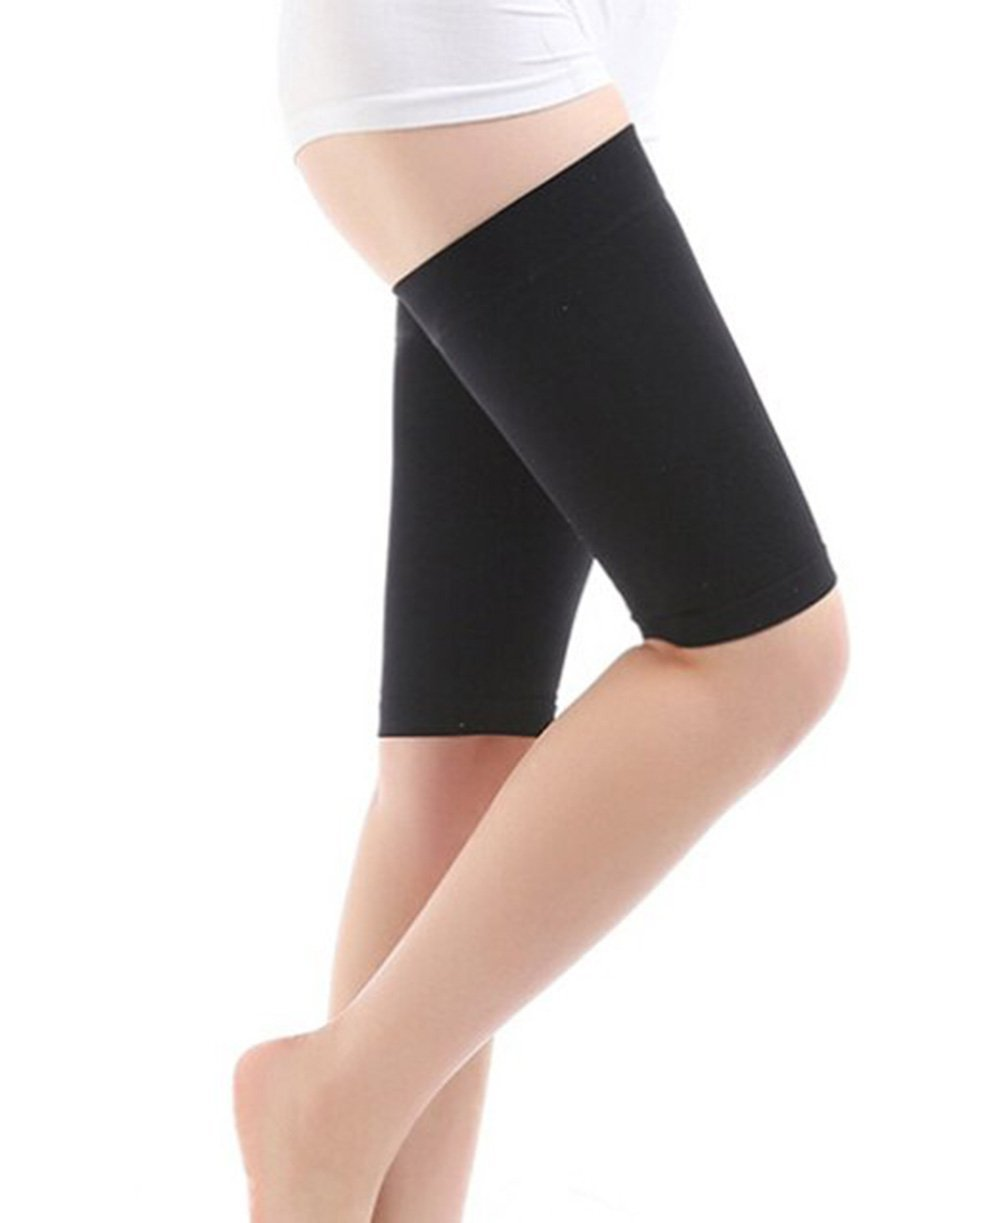 26d38ec32e Get Quotations · Eforstore Elastic Stretch Women Thigh Leg Slimming Shaper  Wrap Belt Weight Loss Fat Body Calorie Off